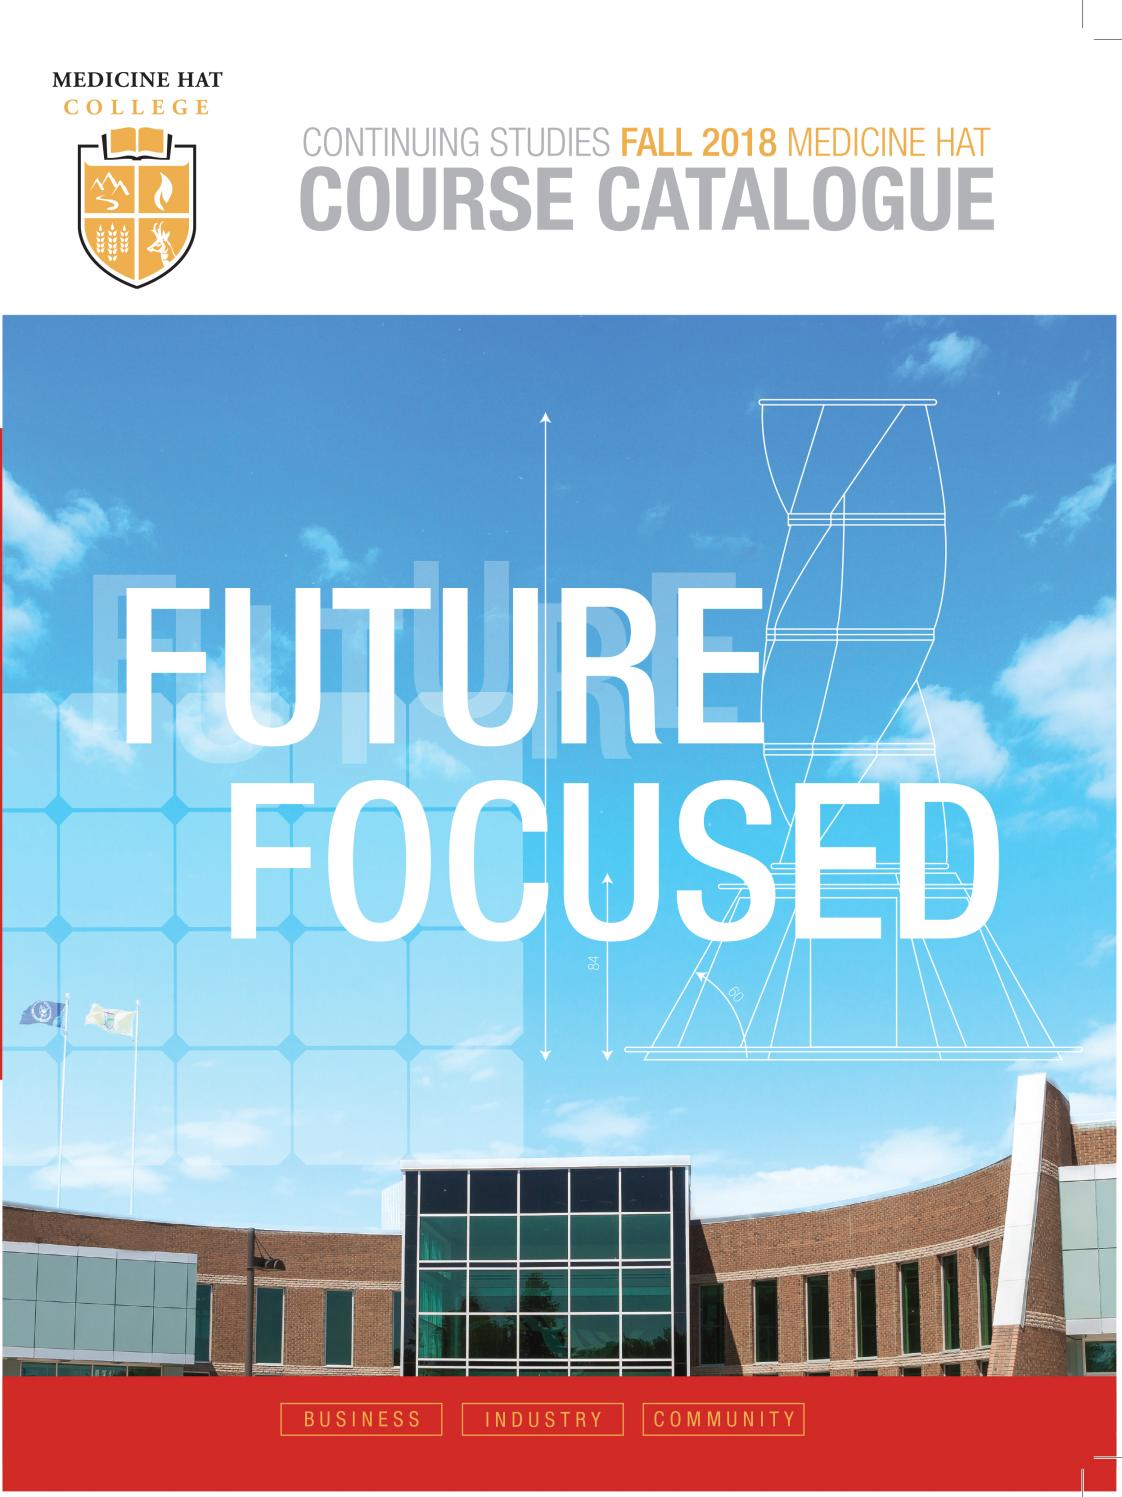 Medicine Hat College Continuing Studies Catalogue Fall 2018 By Download Image Single Humbucker Wiring Diagram Pc Android Iphone And Issuu